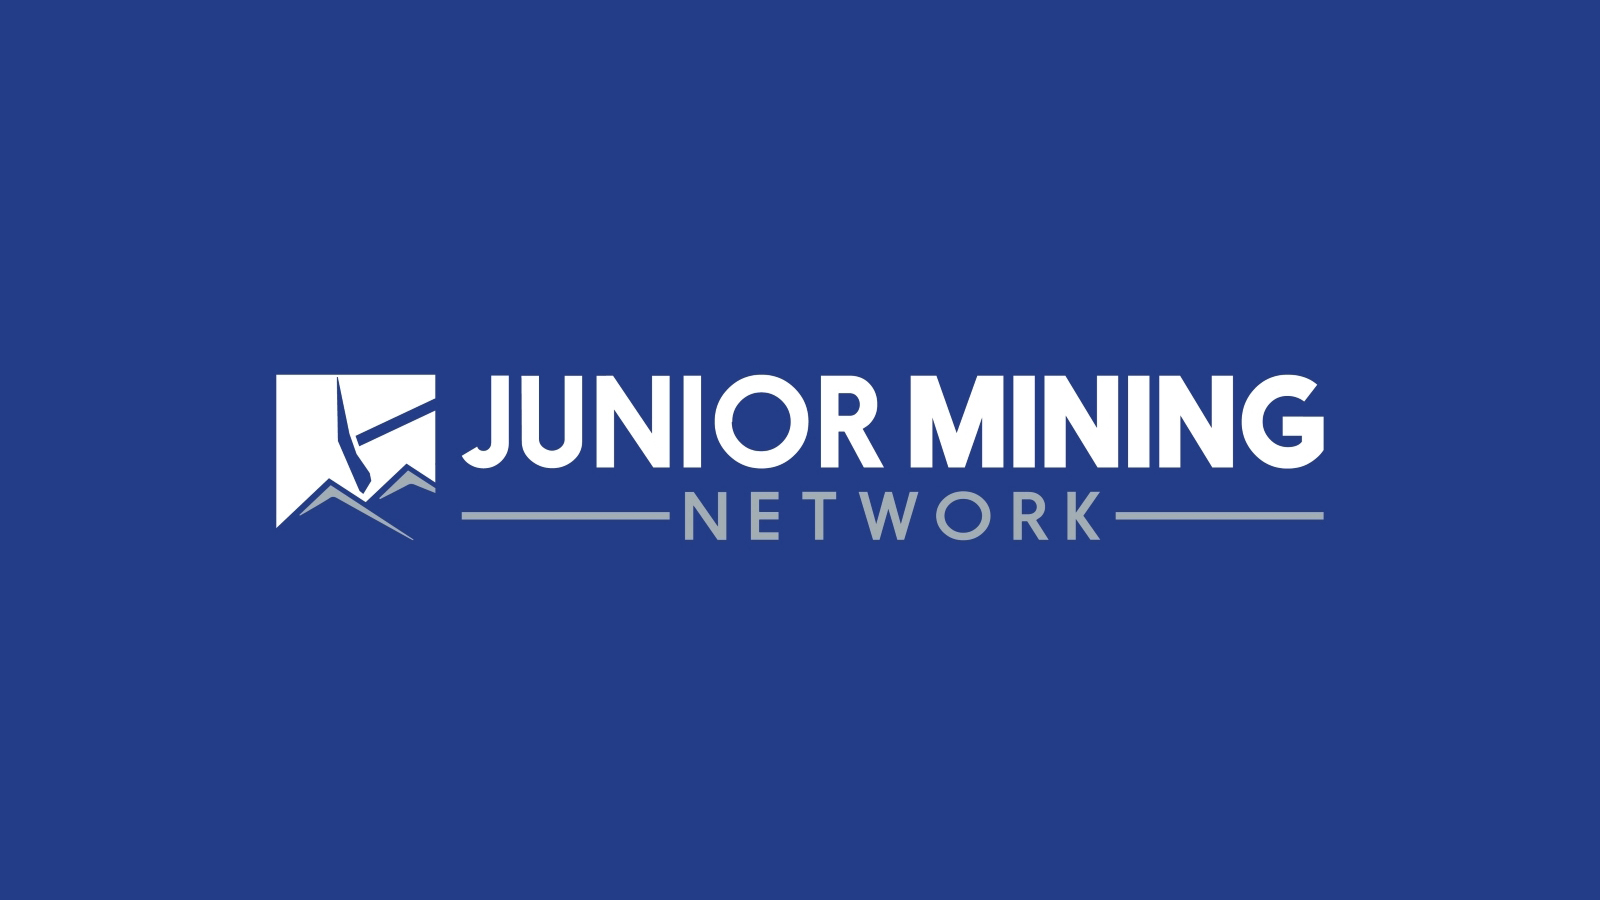 Cannot view this image? Visit: https://www.juniorminingnetwork.com/images/news/newsfile/32201_dni2.jpg